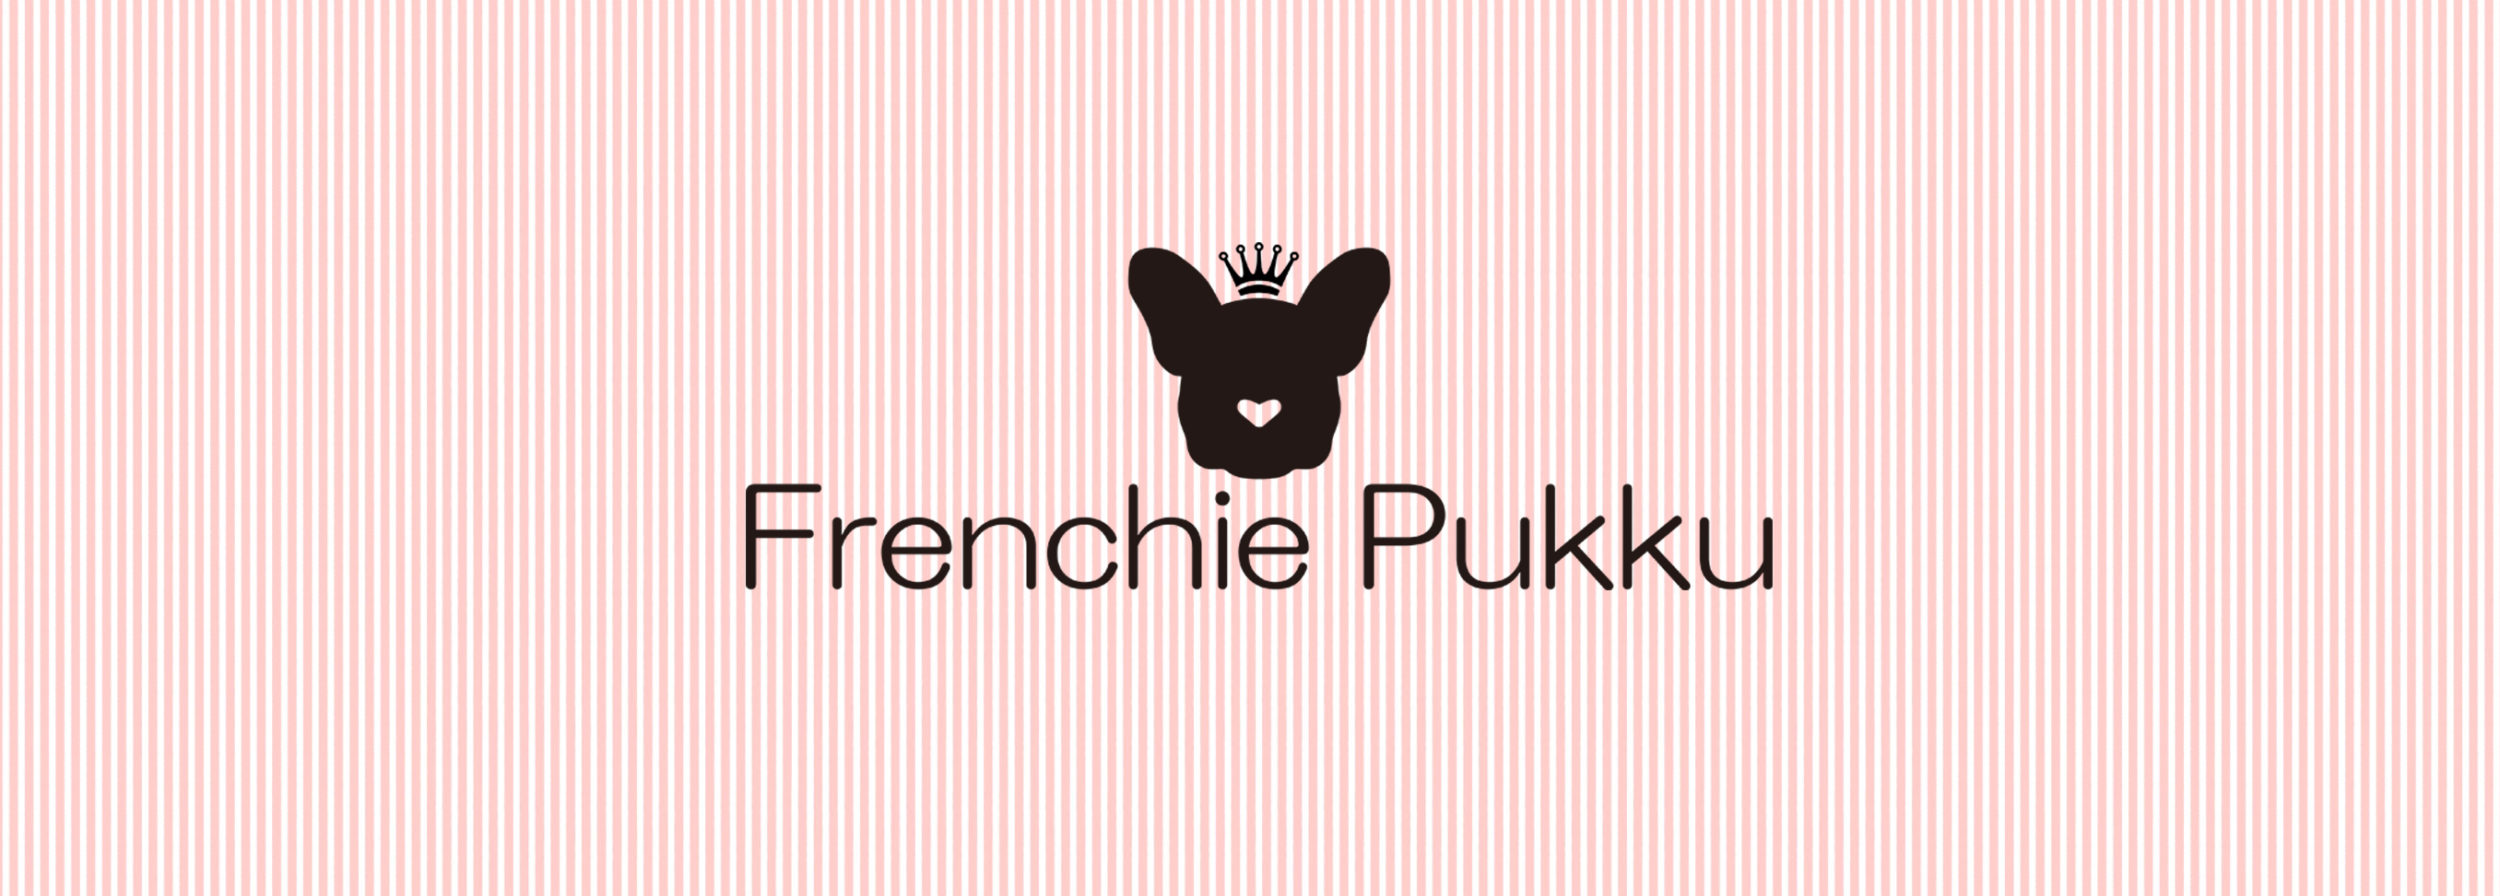 frenchie-pukku.com